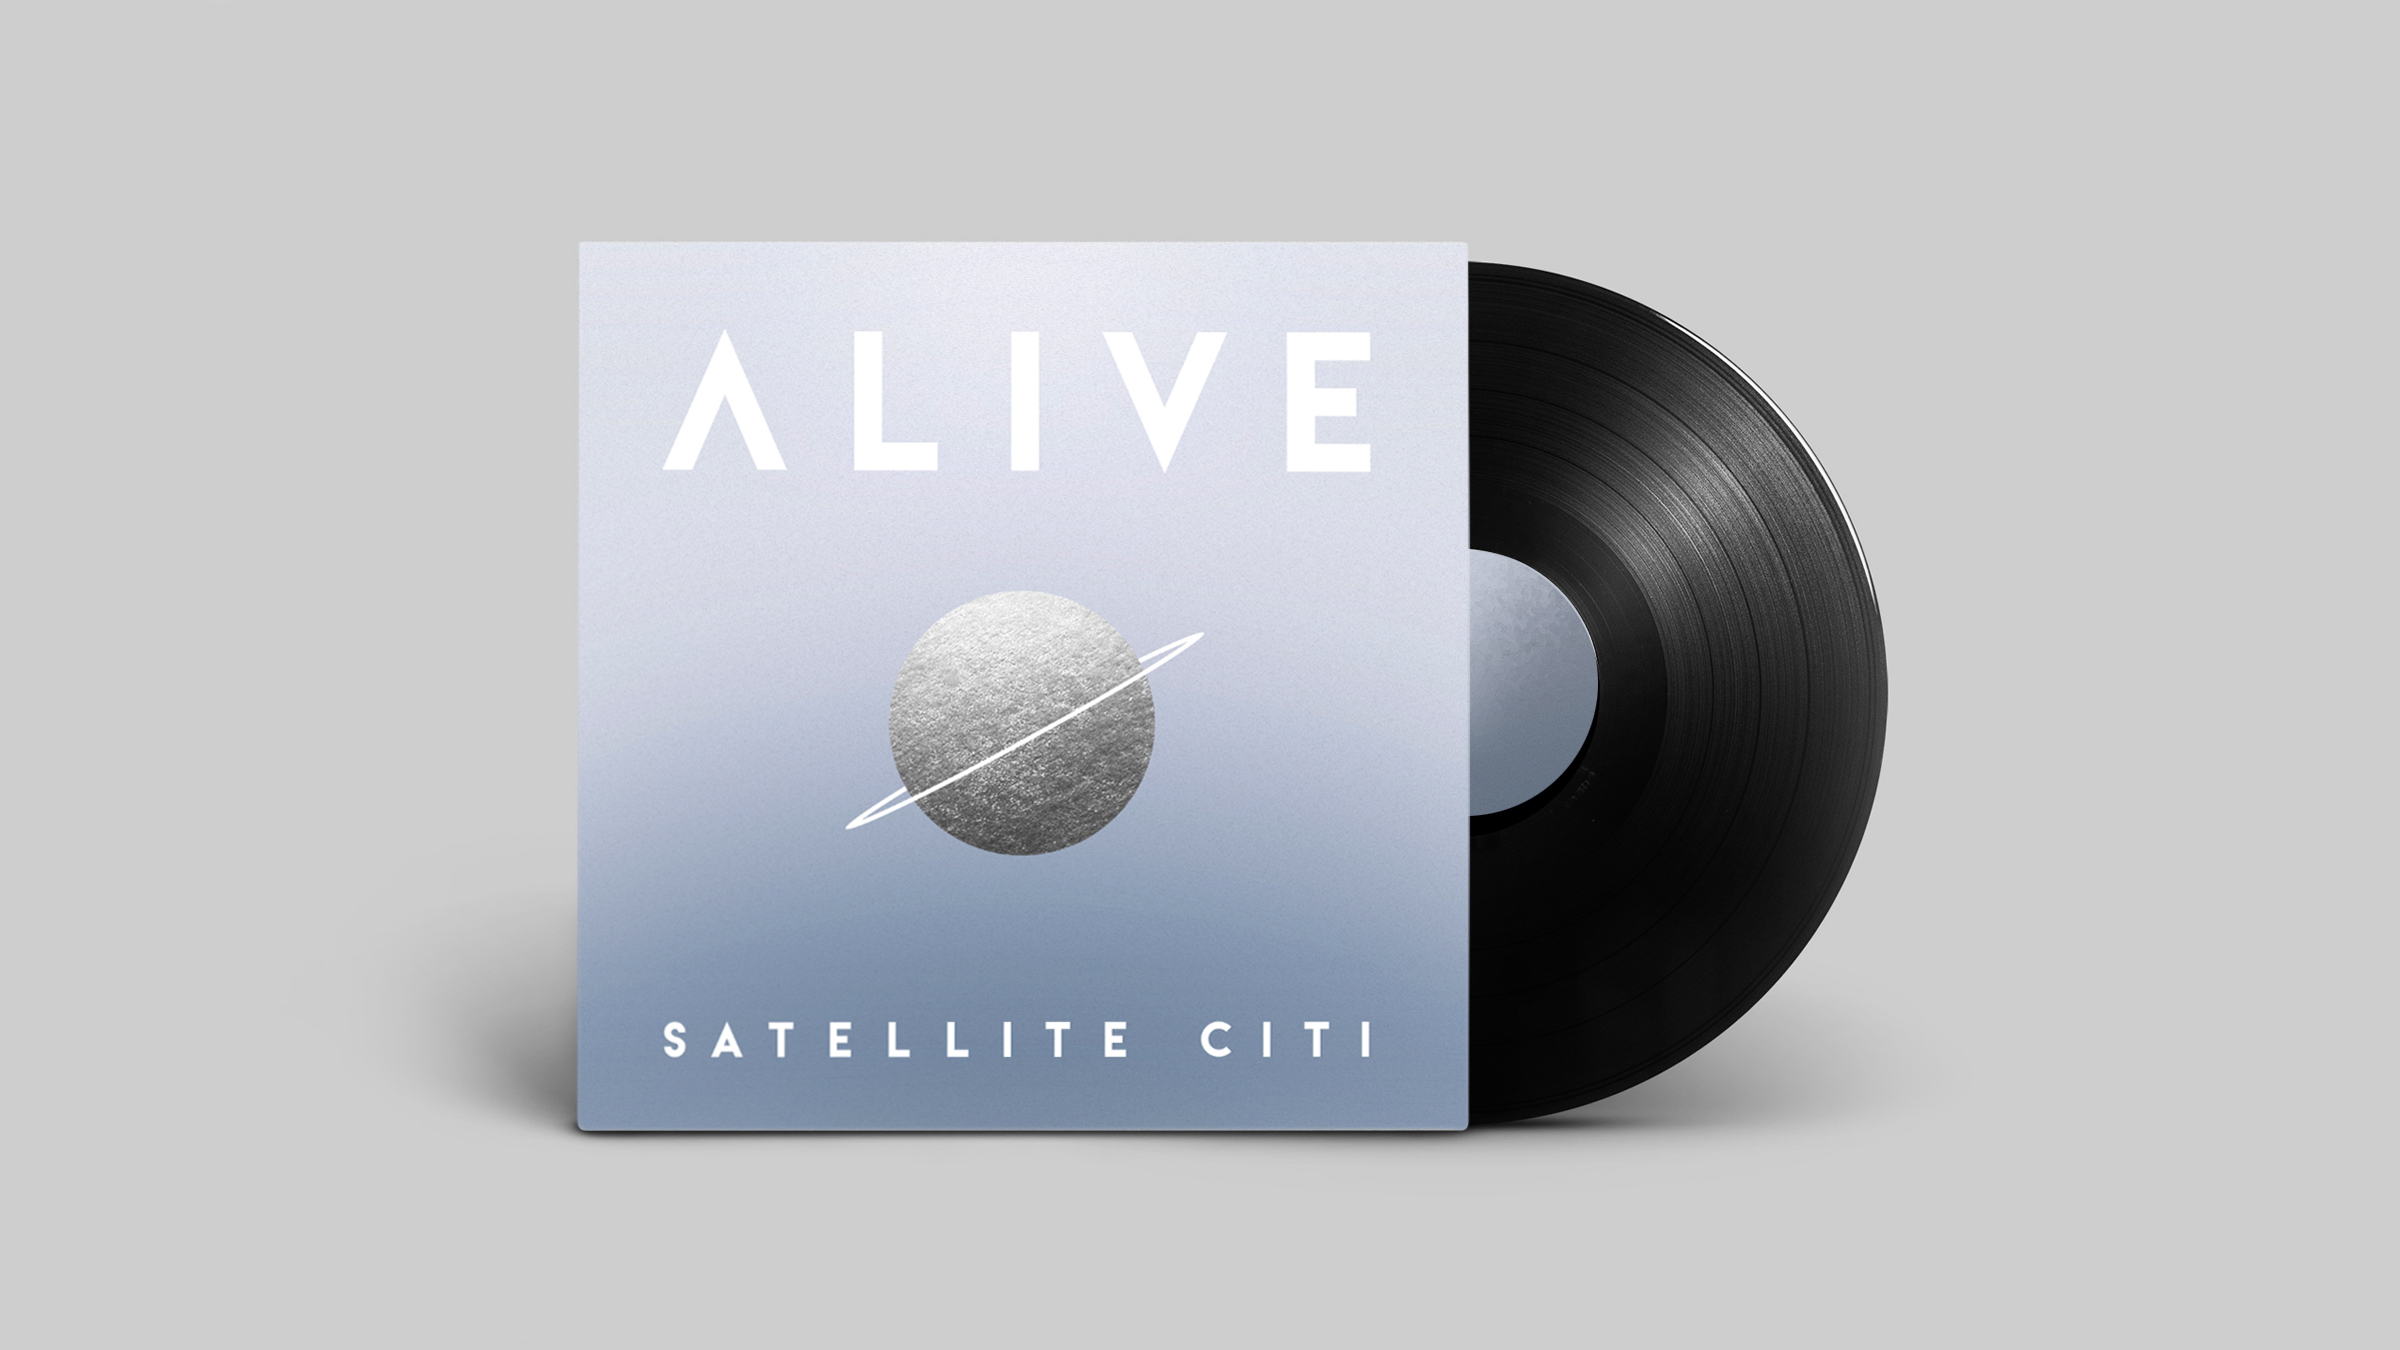 """Alive"" Album Art for Satellite Citi"